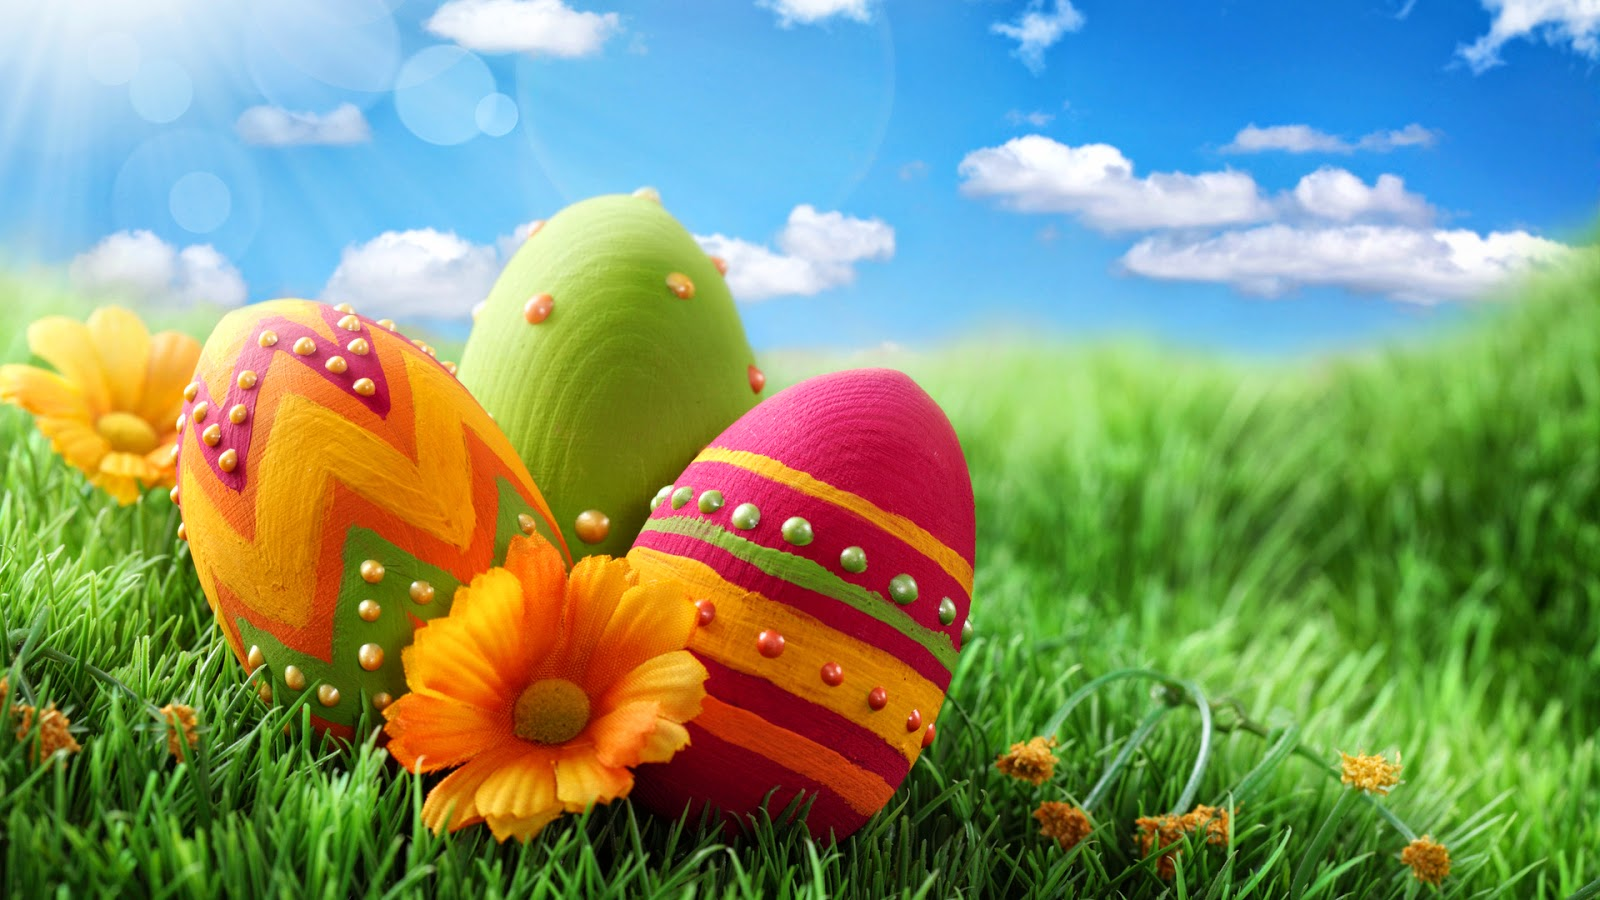 Animated Butterfly Wallpaper Happy Easter 2015 Easter Wishes 2015 Happy Easter 2015